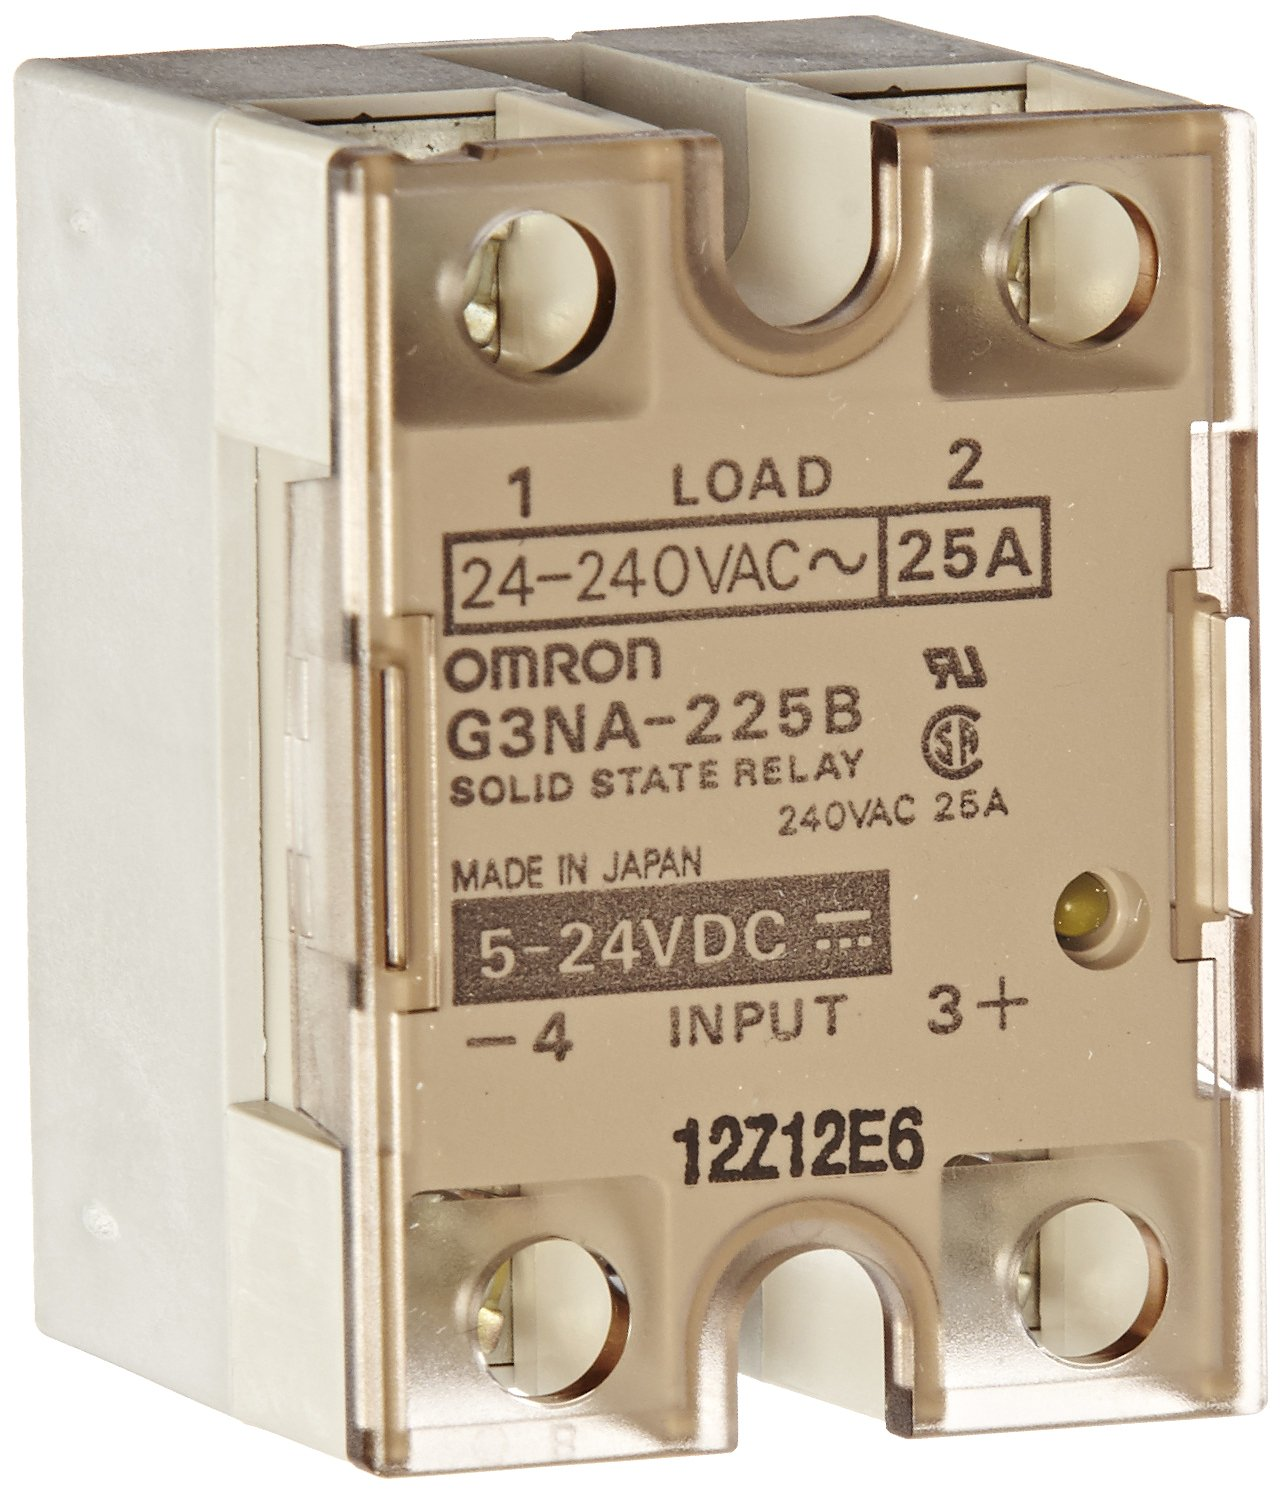 2017 Solid State Relay Omron G3na 225b 240b Ssr Auto Ormron Wiring Diagram